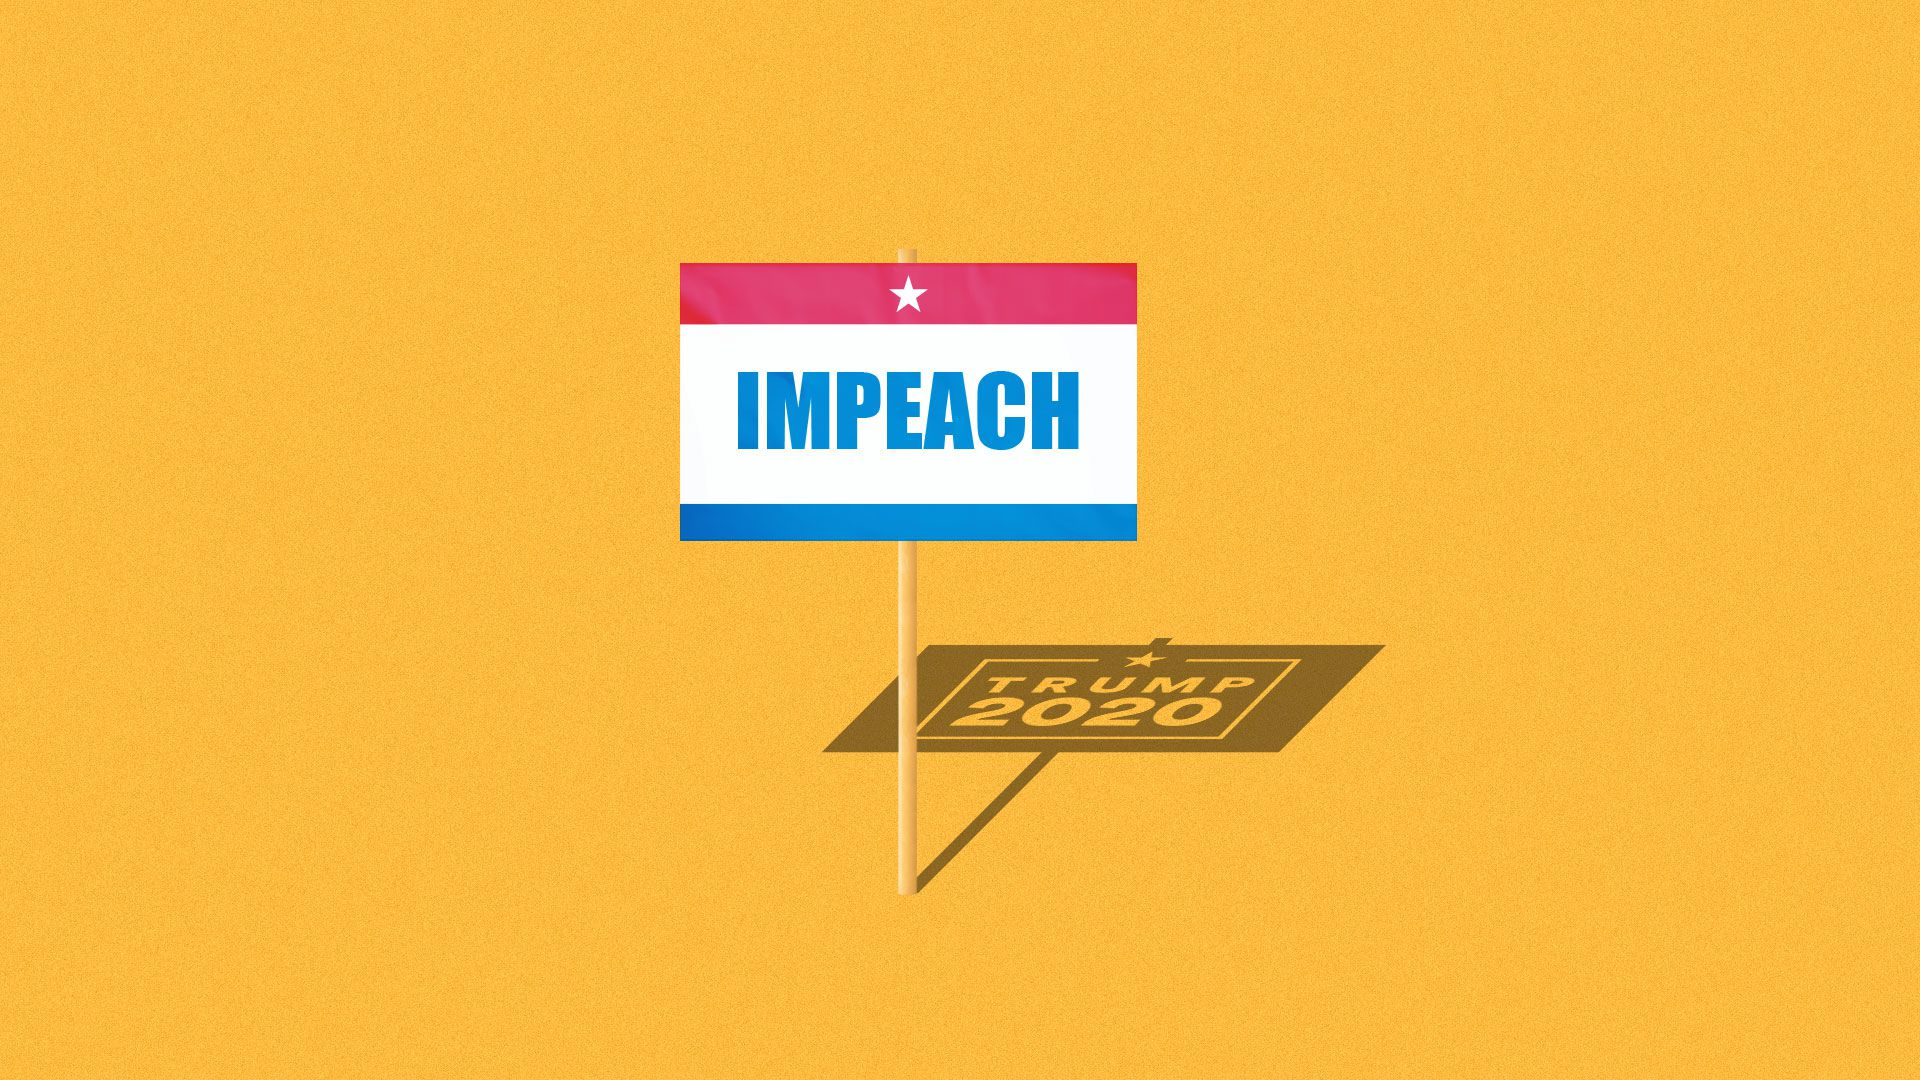 Impeach campaign sign with a Trump 2020 campaign sign in its shadow.